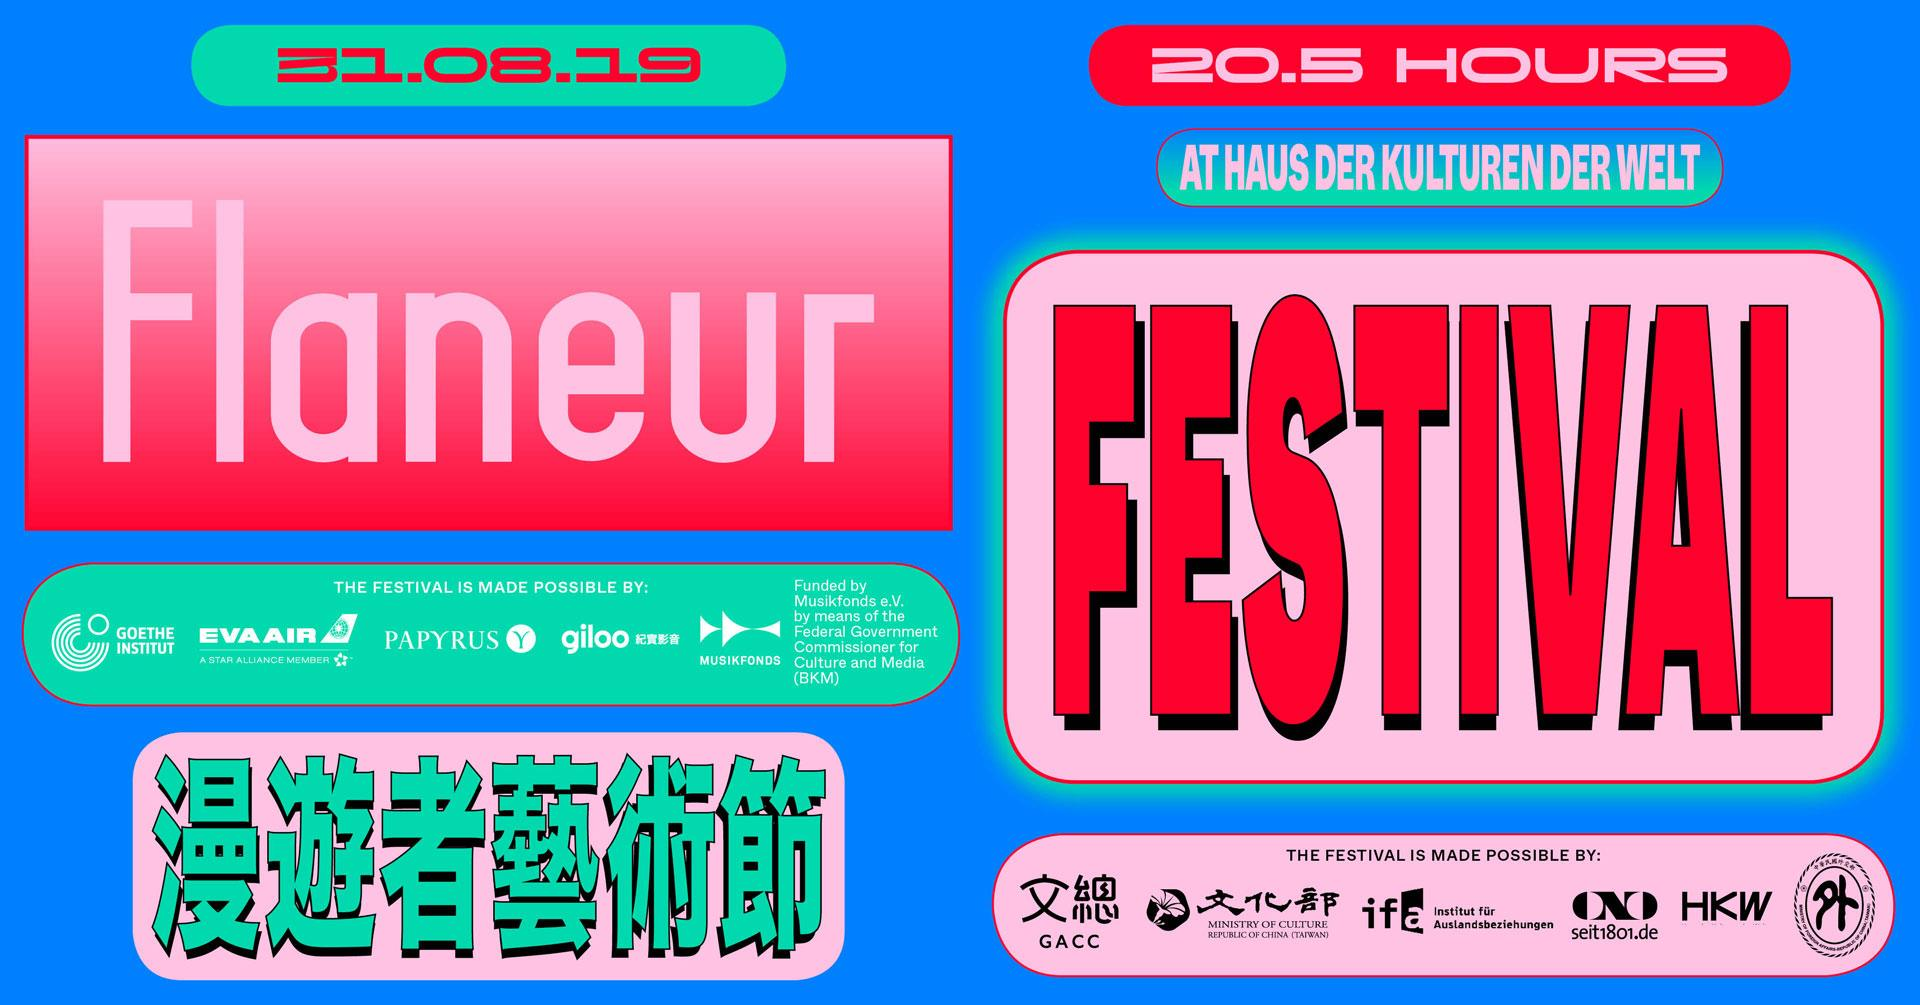 Overnight 20.5-hour-long Flaneur Festival in Berlin to spotlight Taipei